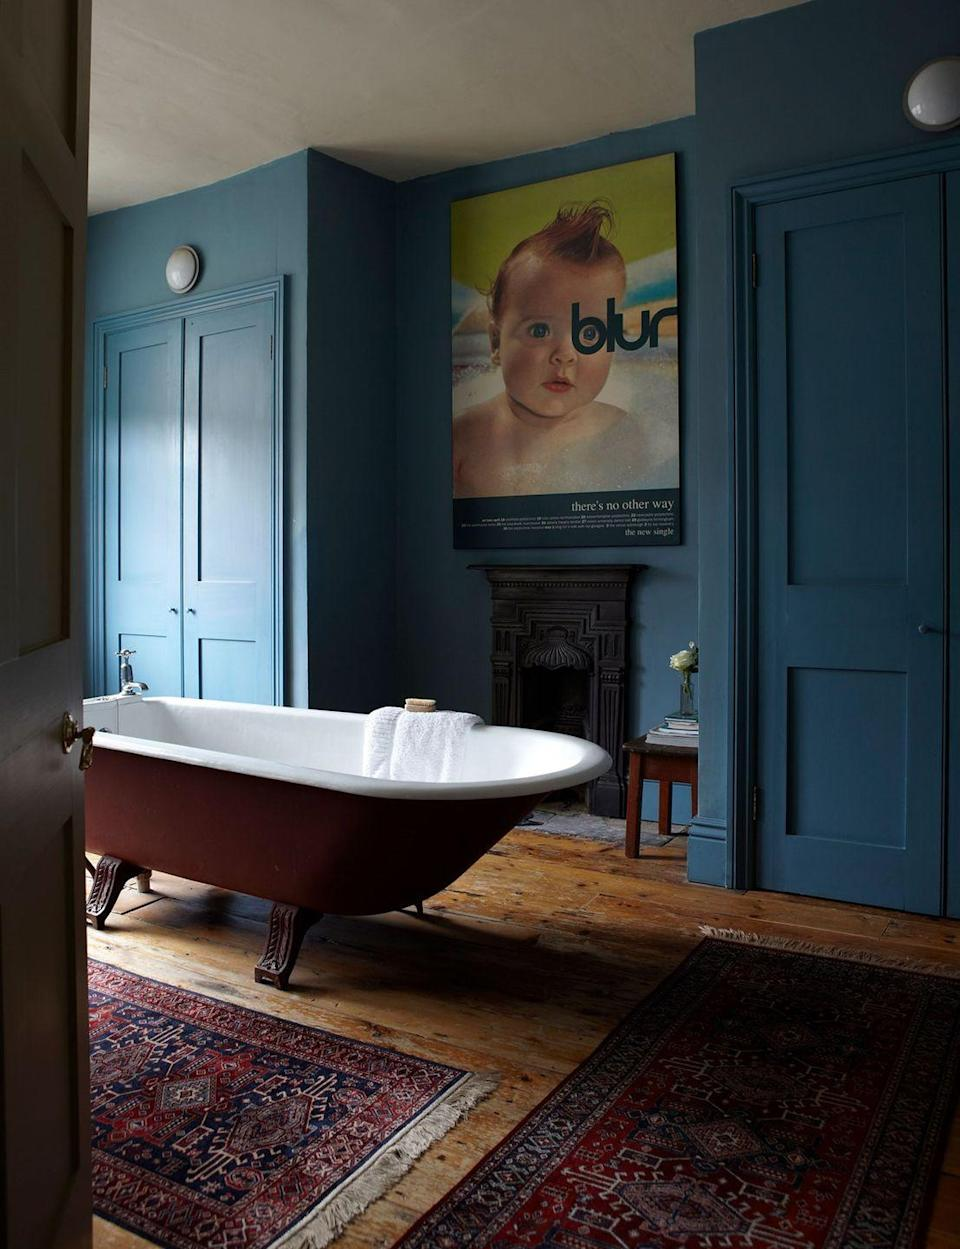 """<p>A jewel-toned blue and deep burgundy colour combination brings a richness and sense of luxury to a room. The splash of chartreuse in the form of a modern graphic poster, and the natural wooden flooring, prevent this scheme from becoming too heavy. <br></p><p>Pictured: <a href=""""https://go.redirectingat.com?id=127X1599956&url=https%3A%2F%2Fwww.farrow-ball.com%2Fpaint-colours%2Fstone-blue&sref=https%3A%2F%2Fwww.countryliving.com%2Fuk%2Fhomes-interiors%2Finteriors%2Fg37384959%2Fcolour-combinations%2F"""" rel=""""nofollow noopener"""" target=""""_blank"""" data-ylk=""""slk:Stone Blue by Farrow & Ball"""" class=""""link rapid-noclick-resp"""">Stone Blue by Farrow & Ball</a></p>"""